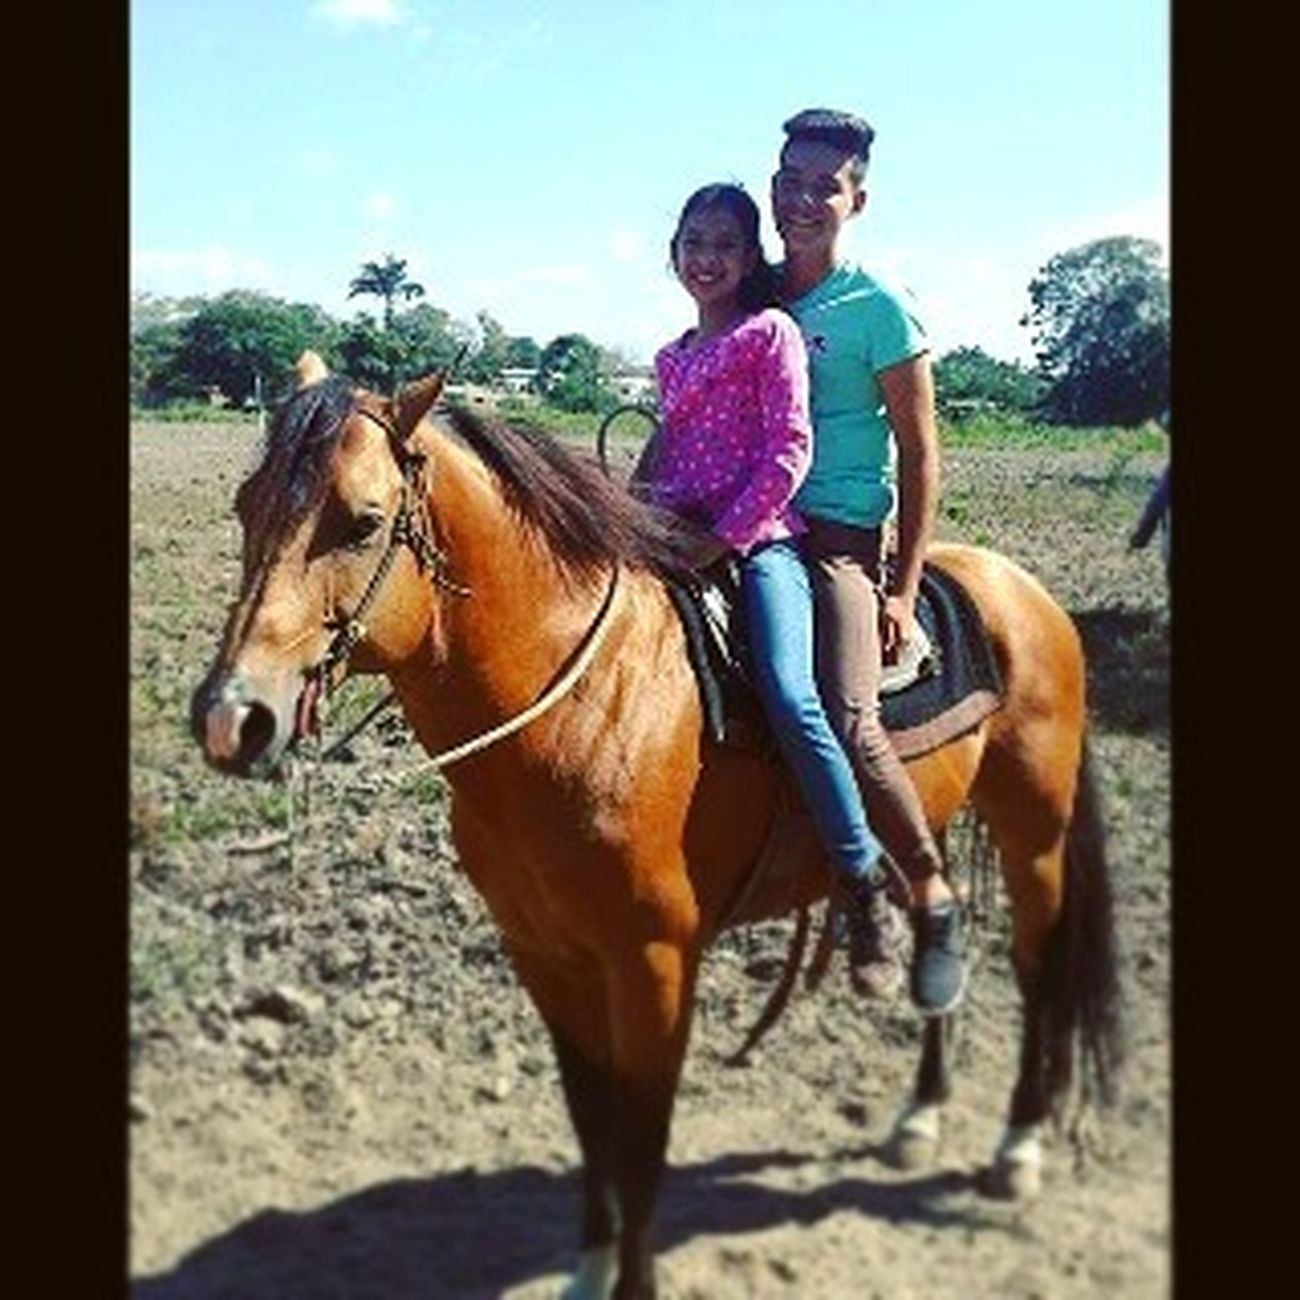 Me⚓ Sister Horse🐴